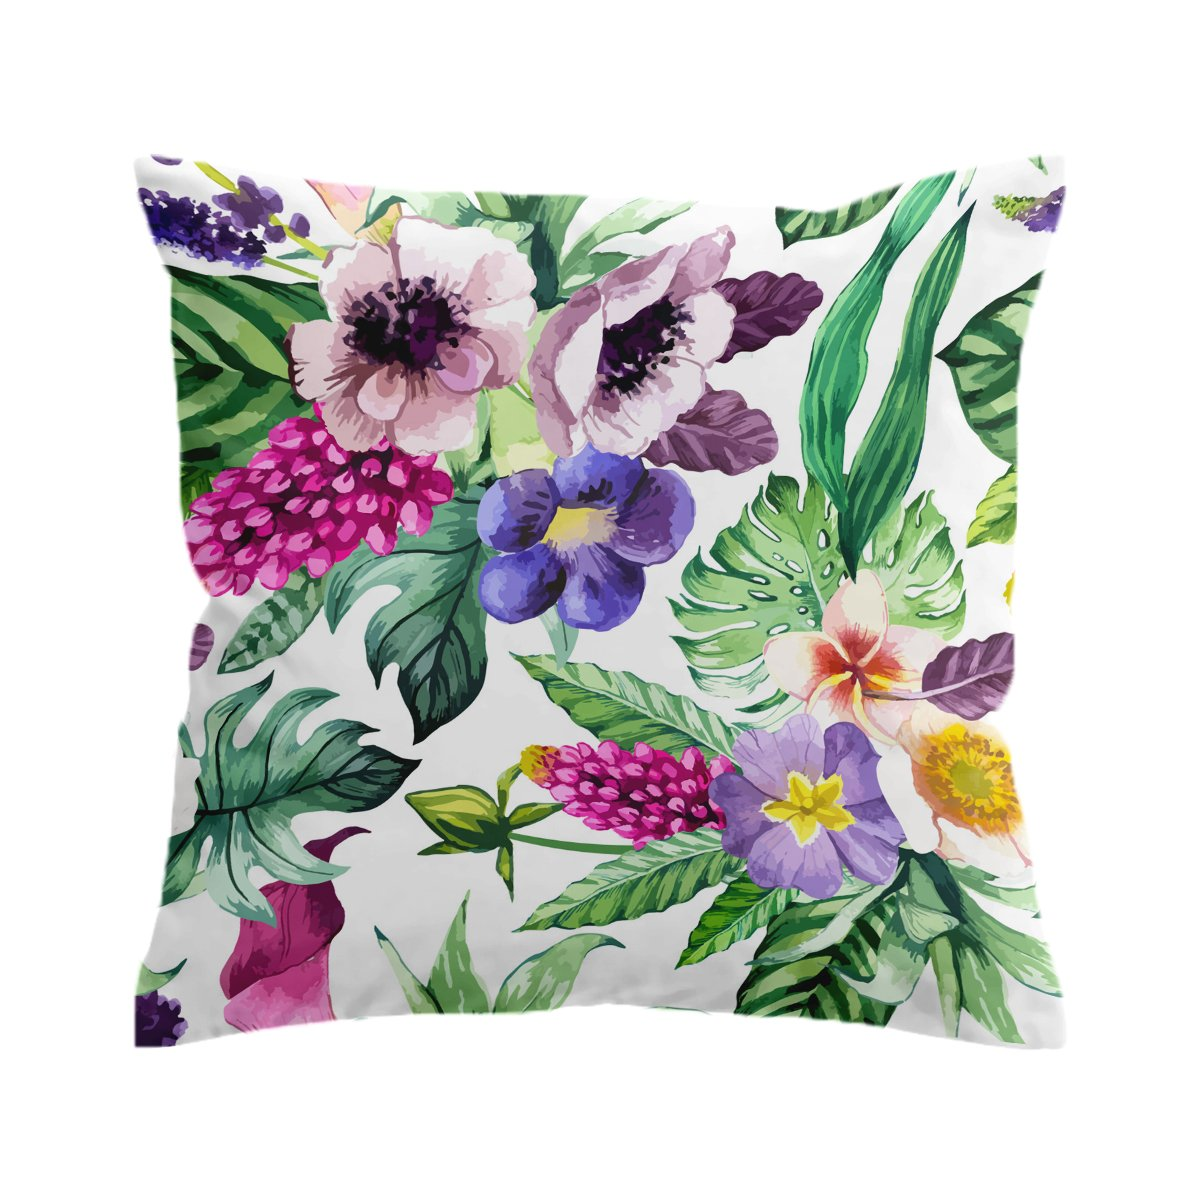 Tropical Flora 1 Pillow Cover-Coastal Passion